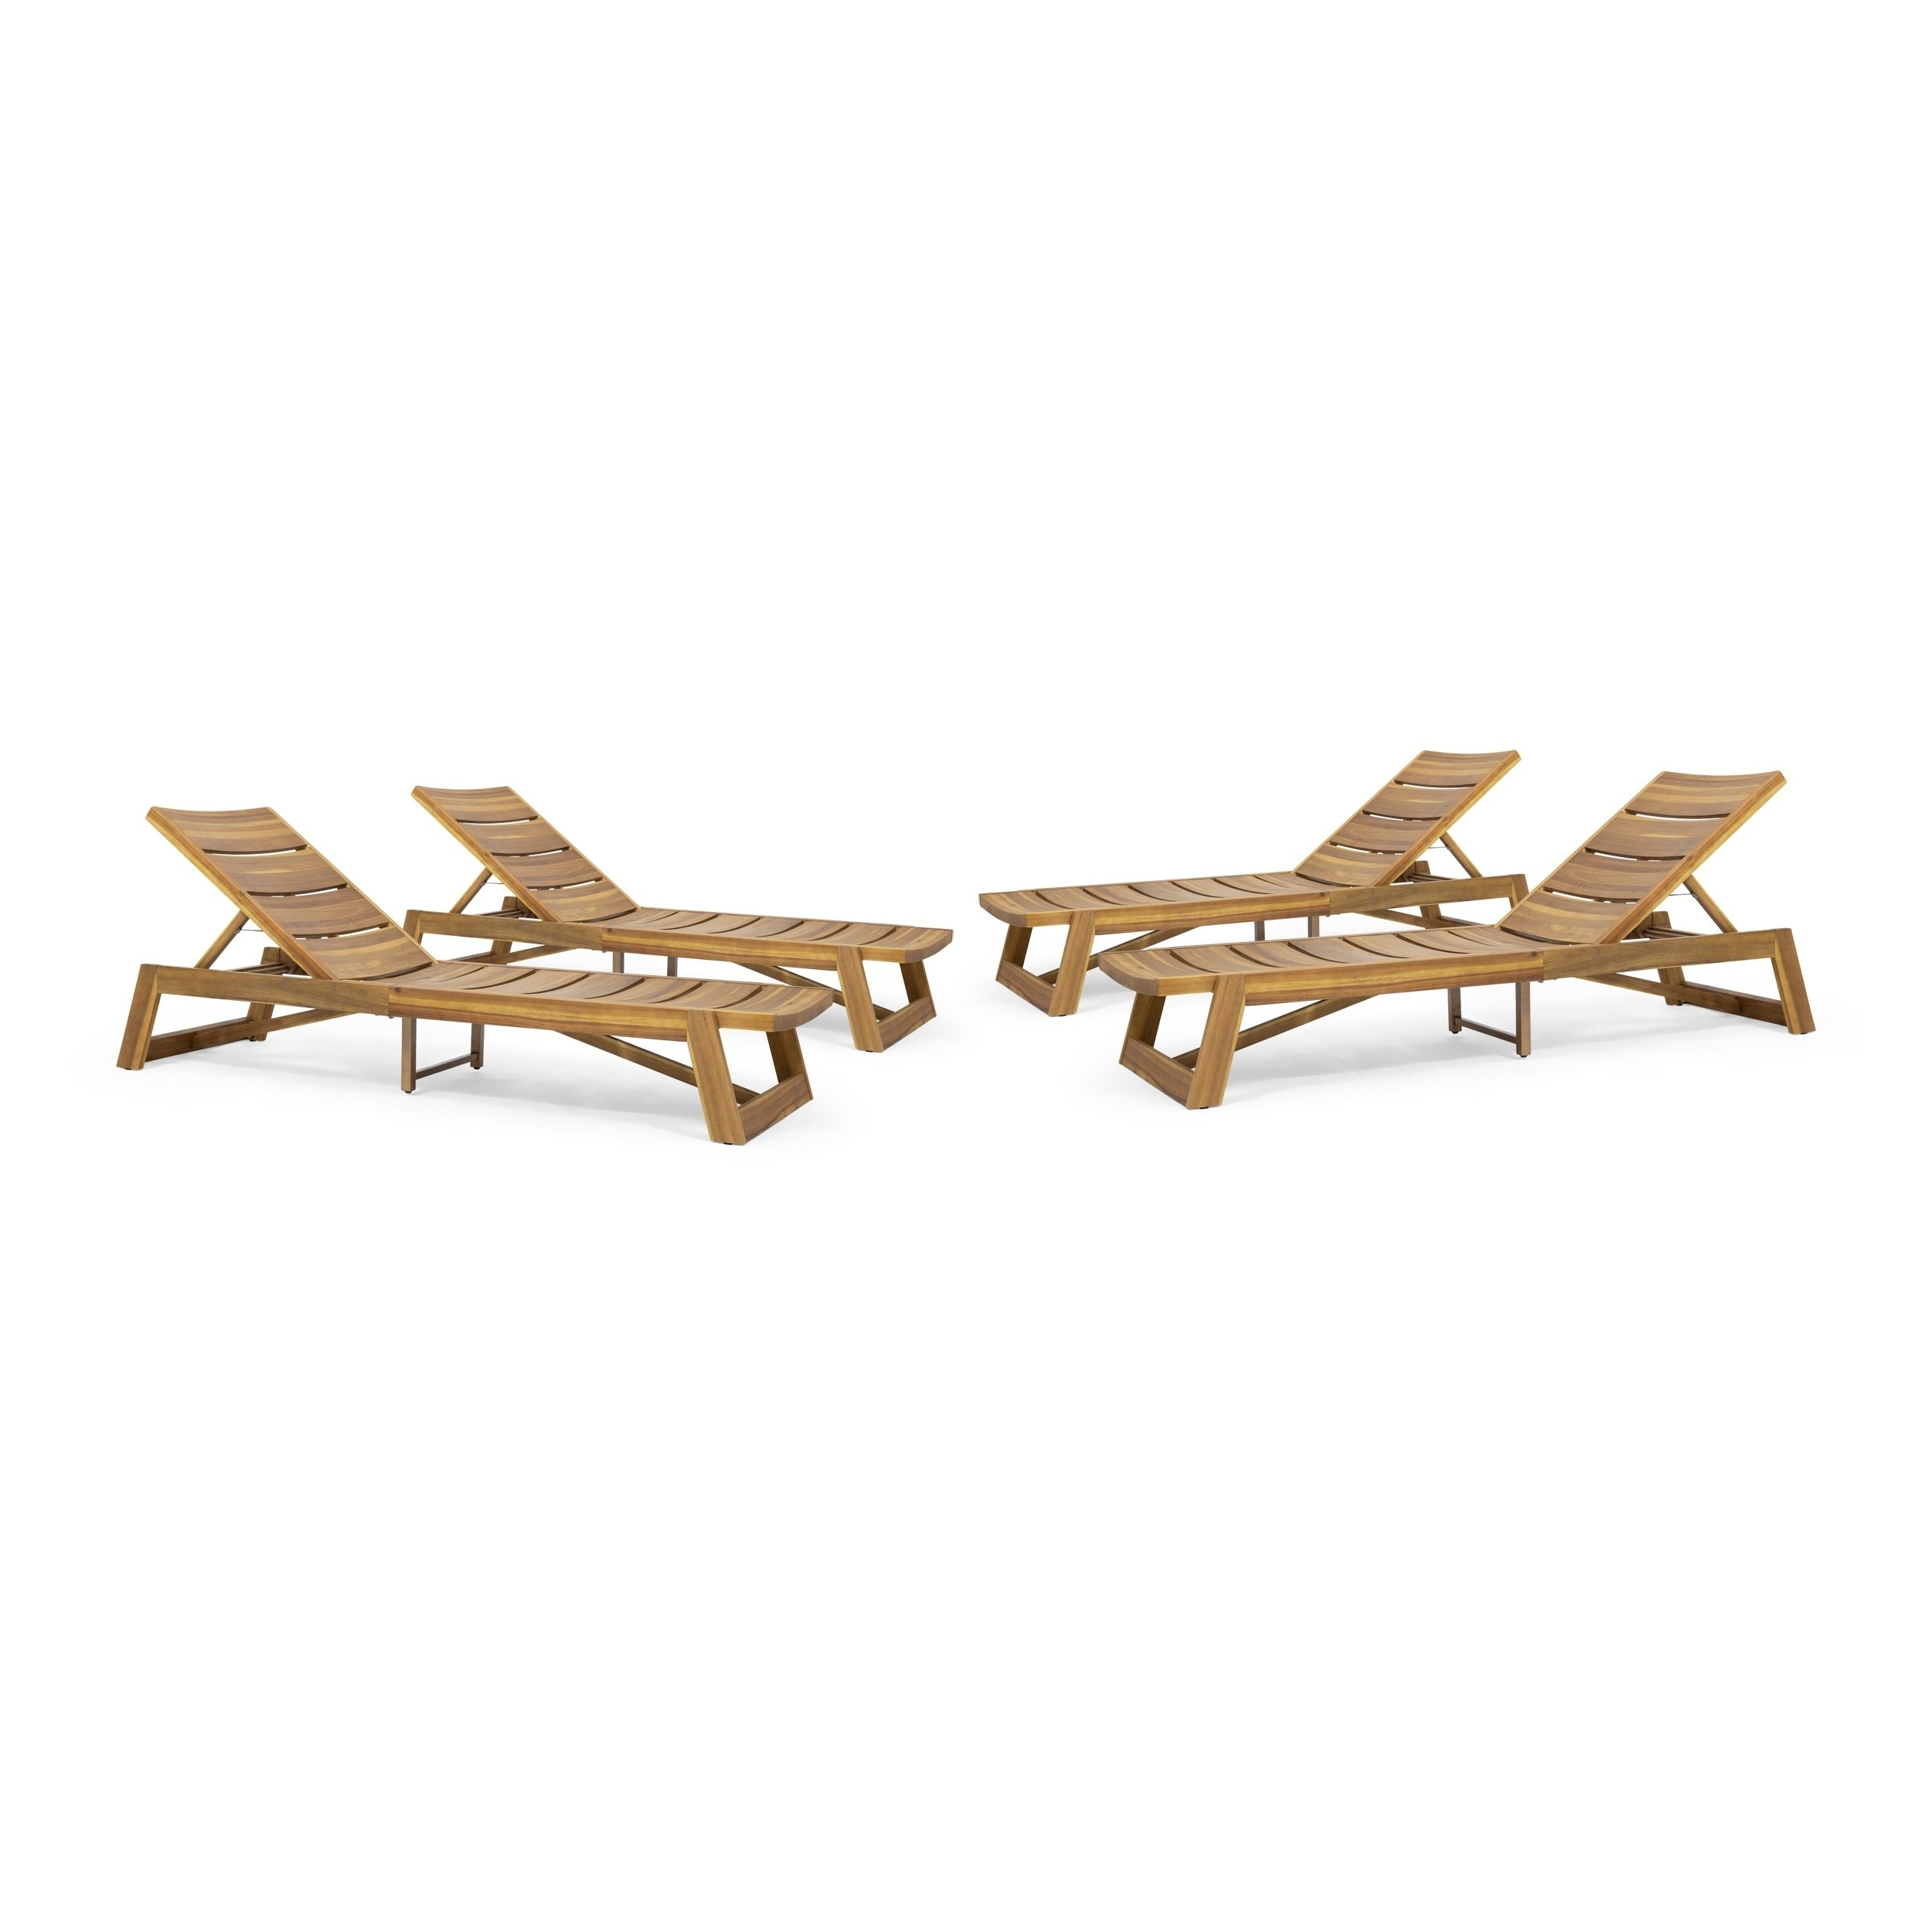 Current Maki Outdoor Wood Chaise Lounges With Regard To Maki Outdoor Acacia Wood Chaise Lounge (Set Of 4)Christopher Knight Home (View 6 of 25)